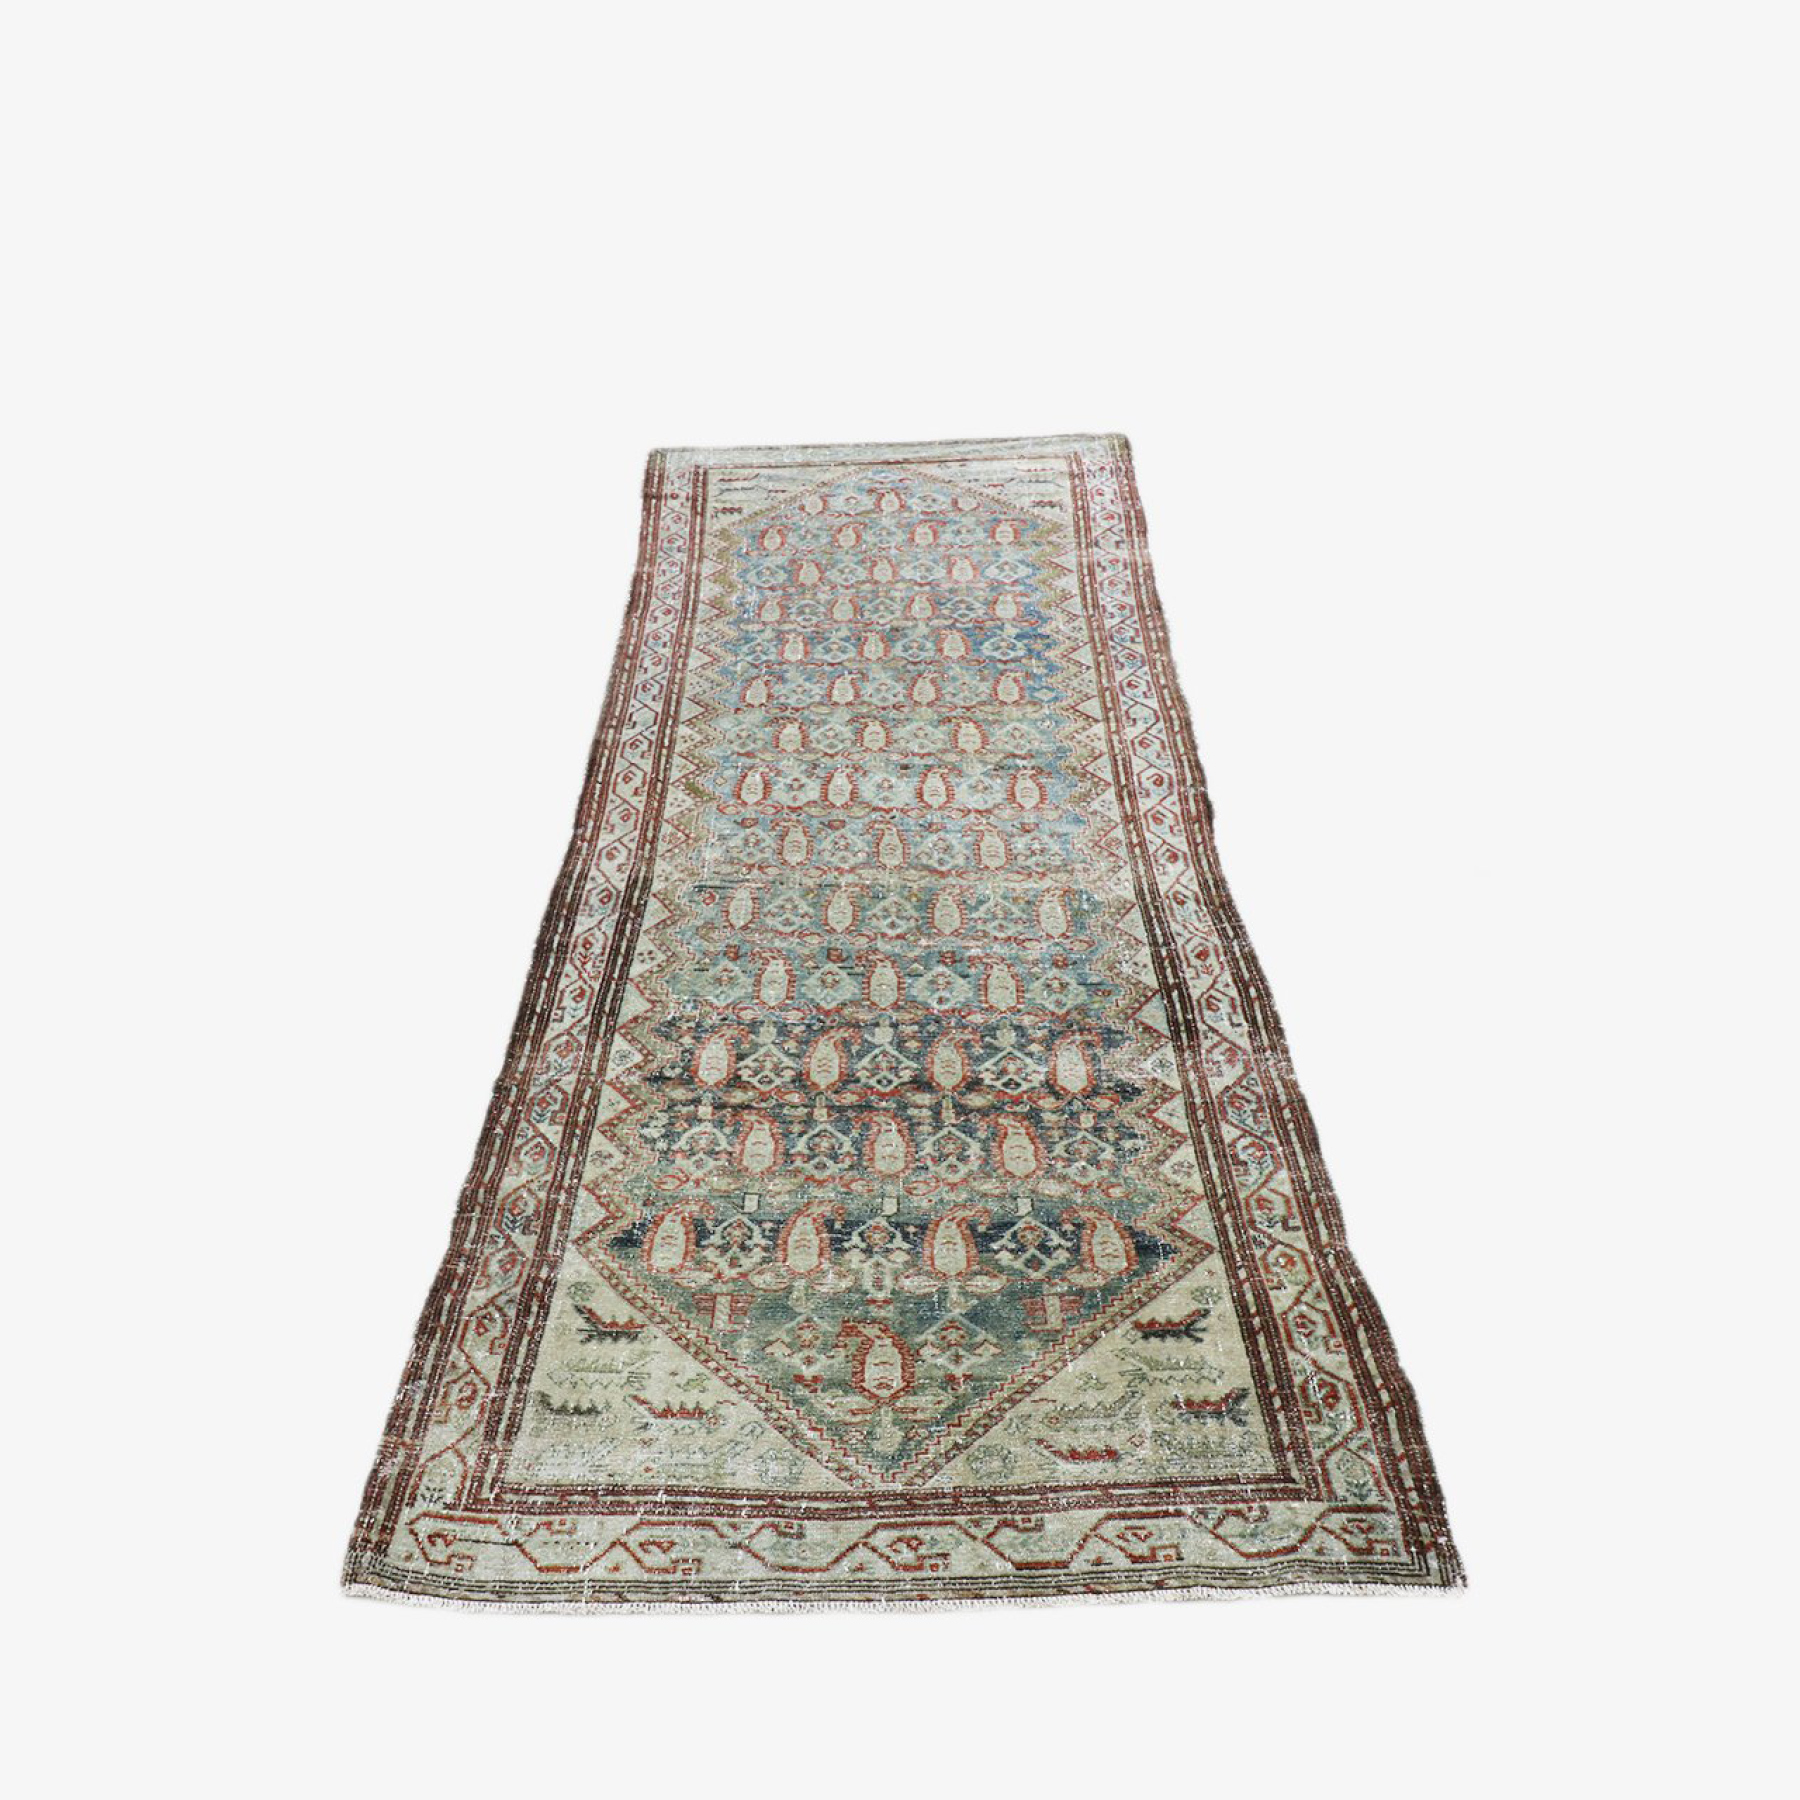 ALL-SORTS-OF-SHOPPE-RUNNER-RUG2